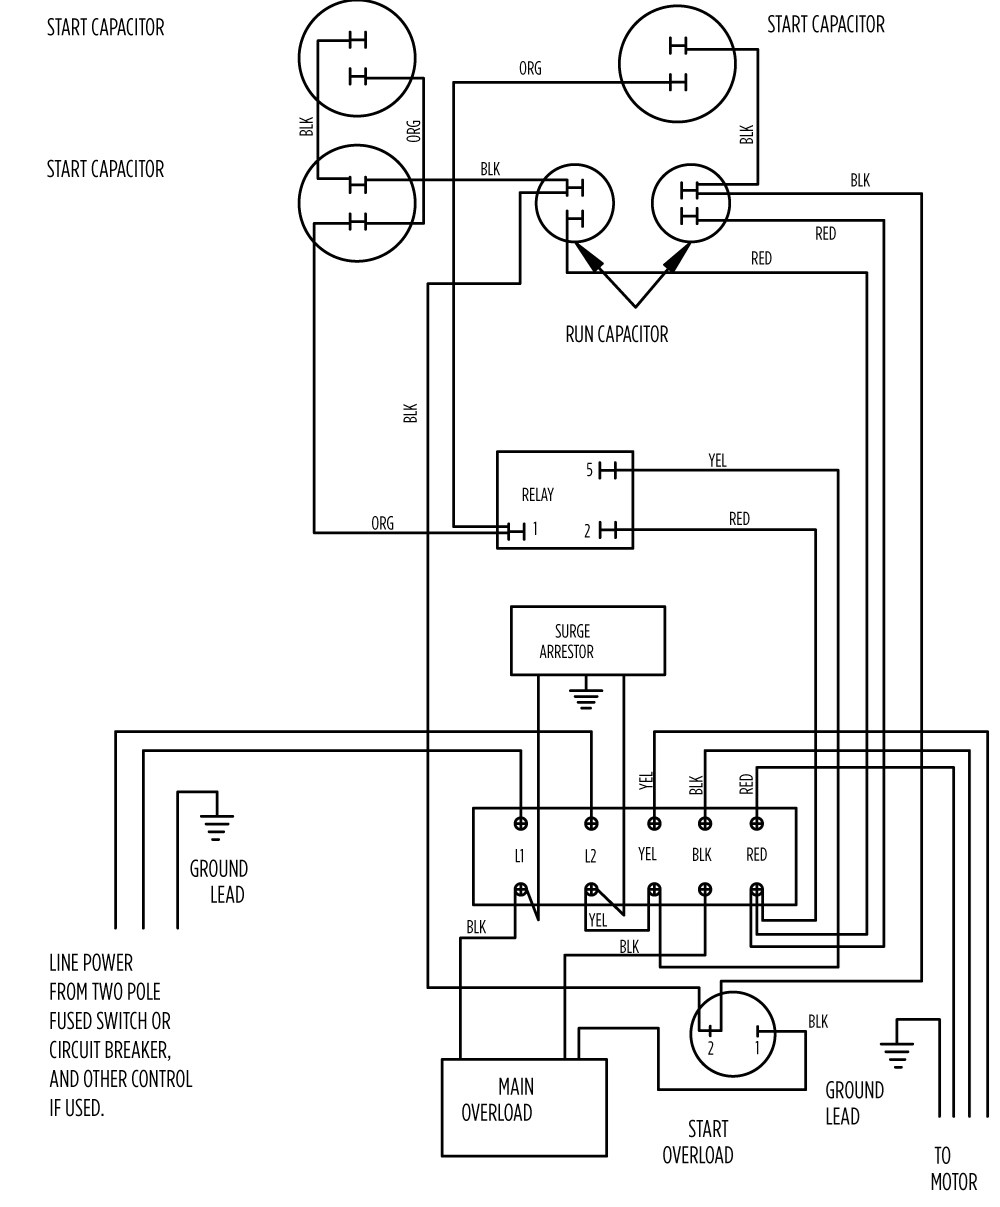 10 hp standard 282 202 9210 or 282 202 9230_aim gallery?format=jpg&quality=80 aim manual page 57 single phase motors and controls motor franklin control box wiring diagram at soozxer.org